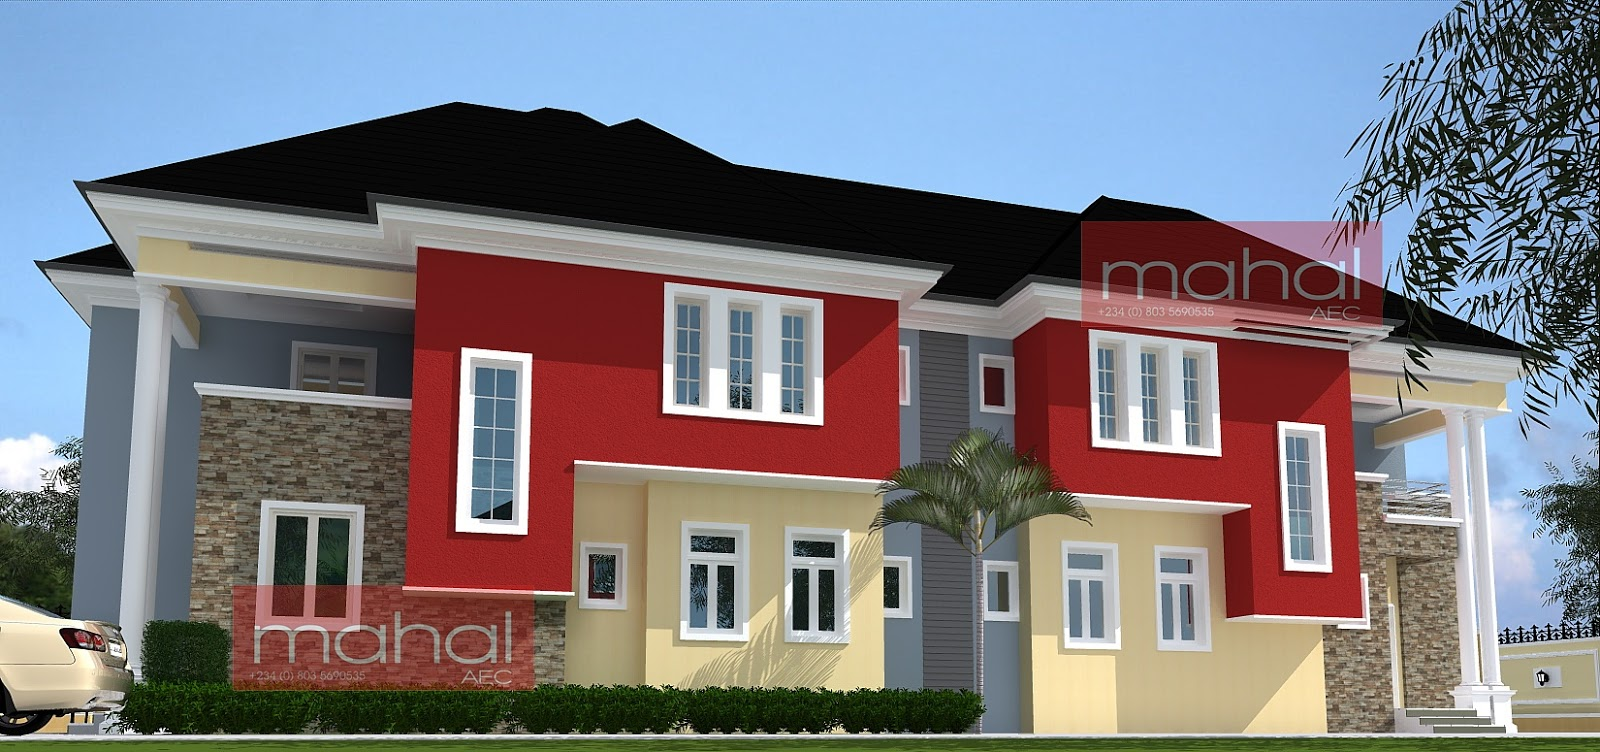 Contemporary nigerian residential architecture p uwa for Nigerian architectural designs